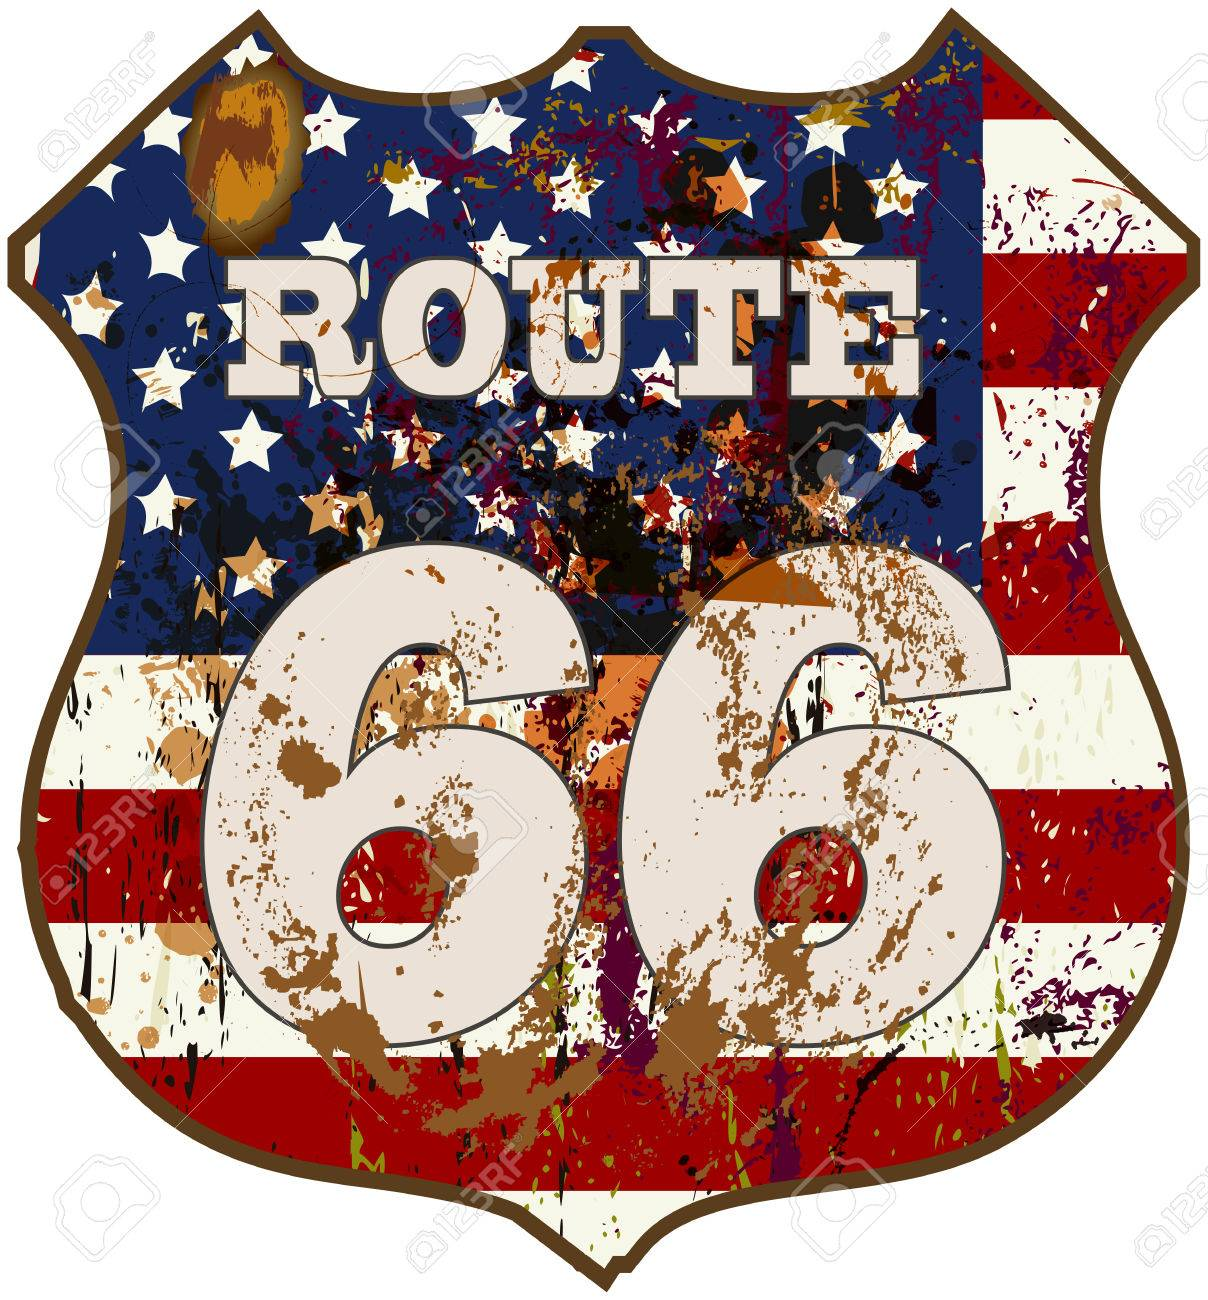 vintage route 66 road sign, retro style, vector illustration - 31922206